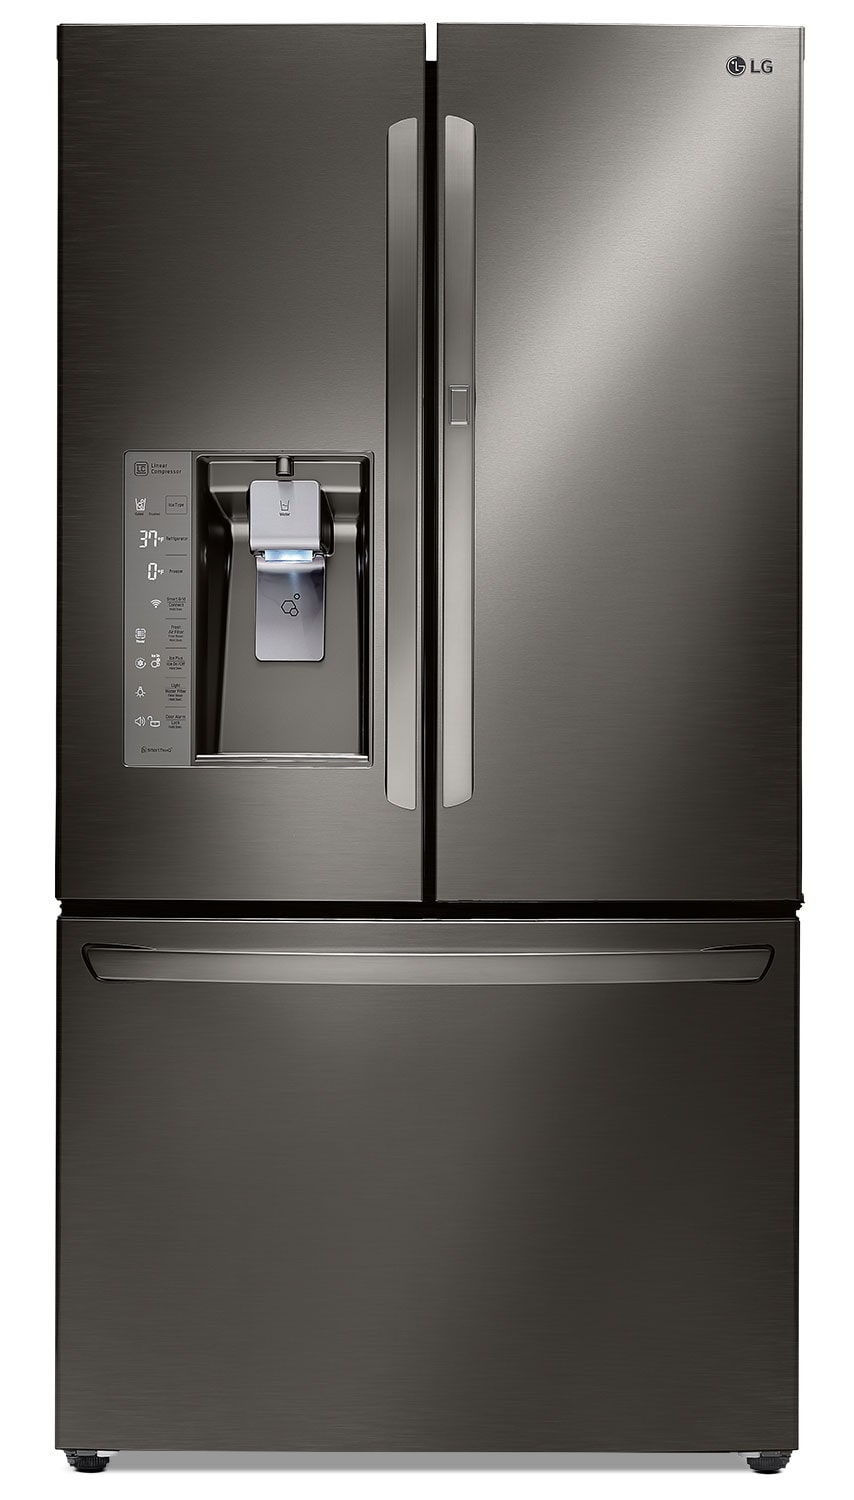 LG Appliances Black Stainless Steel French-Door Refrigerator (29.6 Cu. Ft.) - LFXS30766D